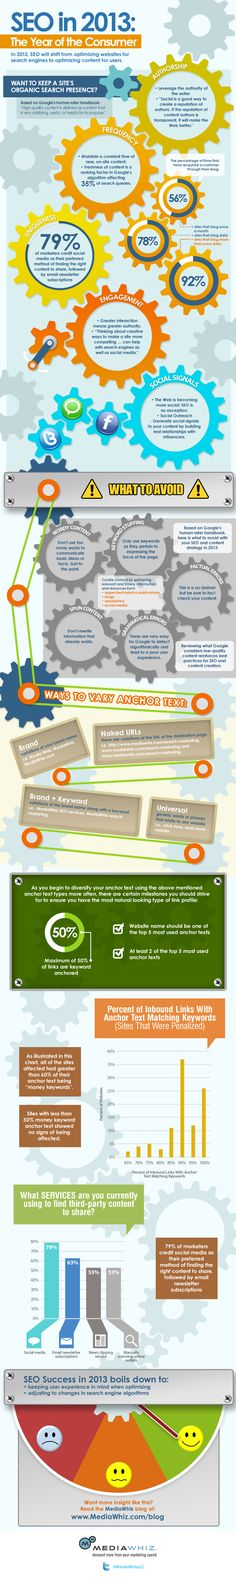 #SEO in 2013: The Year of the Consumer #Infographic